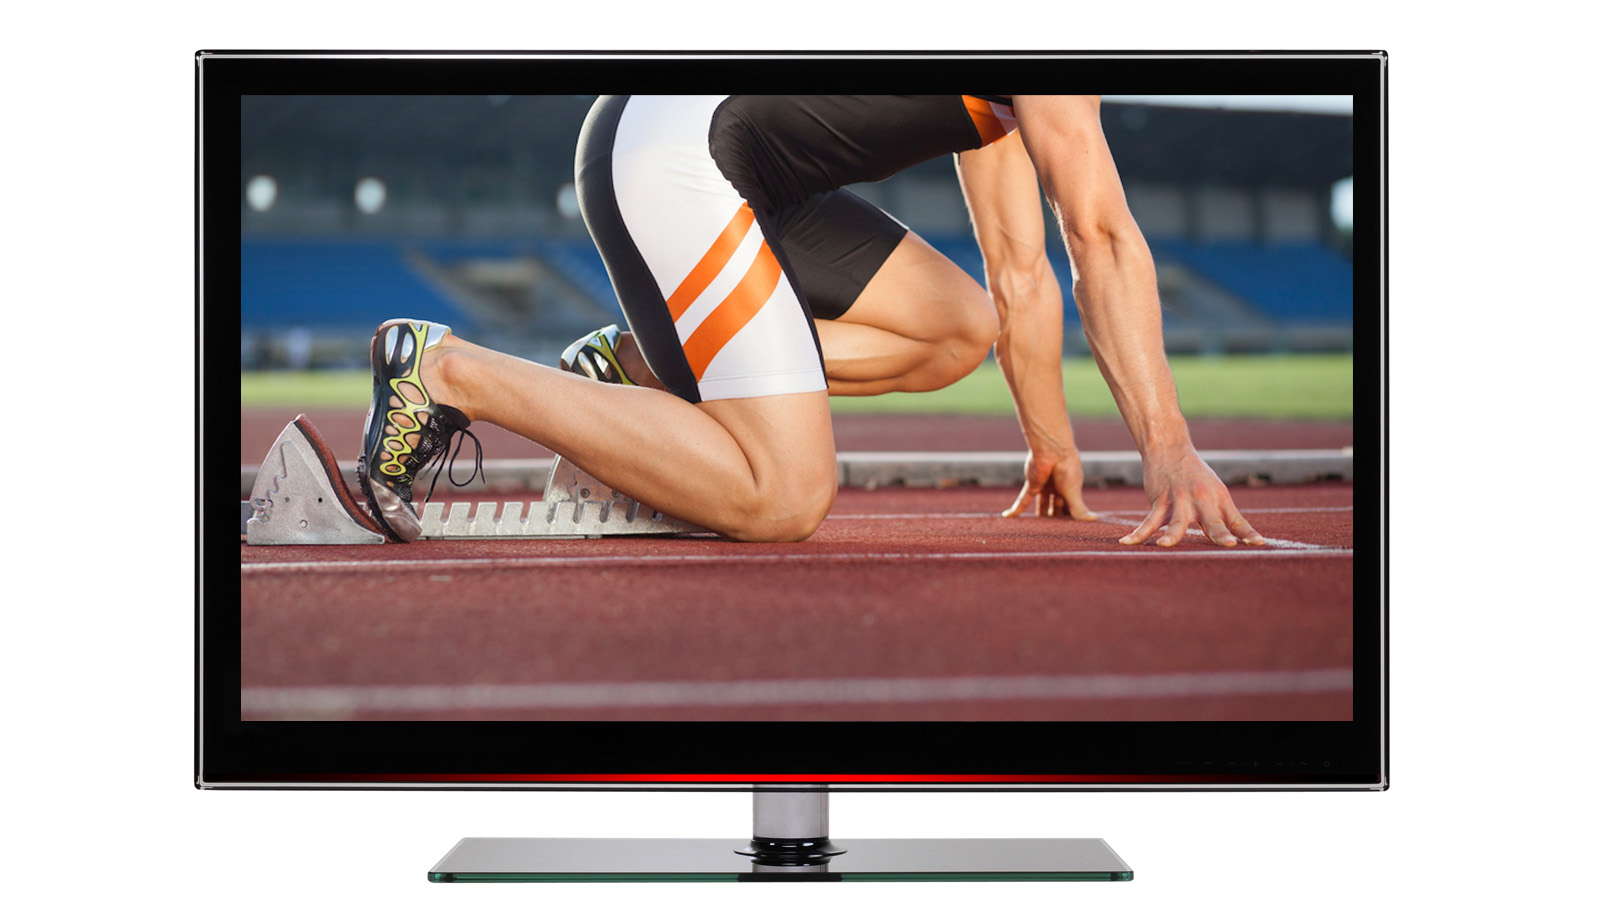 Click here to read Not Even the Olympics Can Make 3DTV Worth It